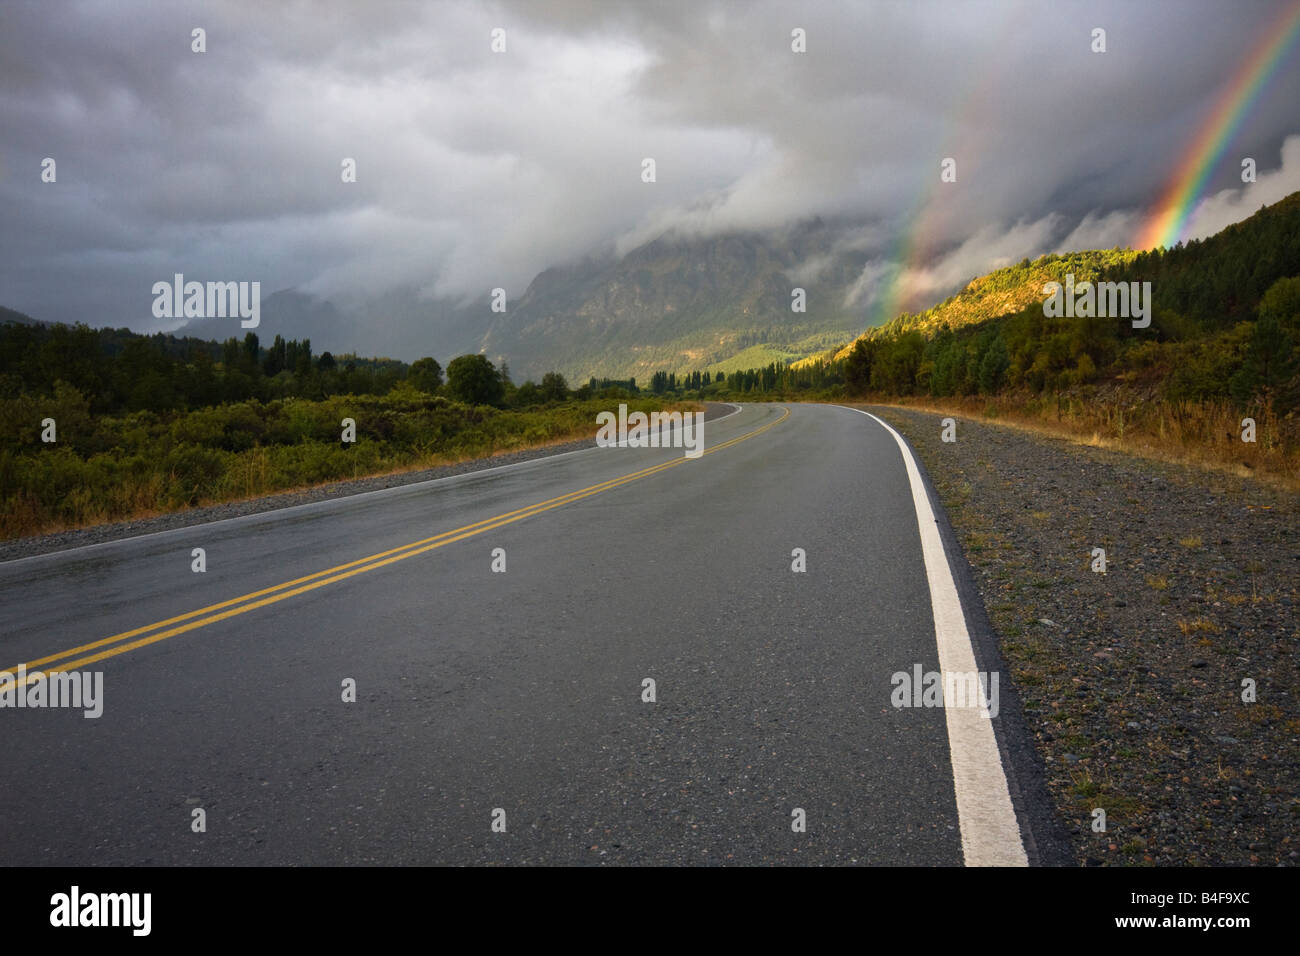 Beautiful double rainbow after a storm at route 254, El Bolson, Patagonia, Argentina. - Stock Image